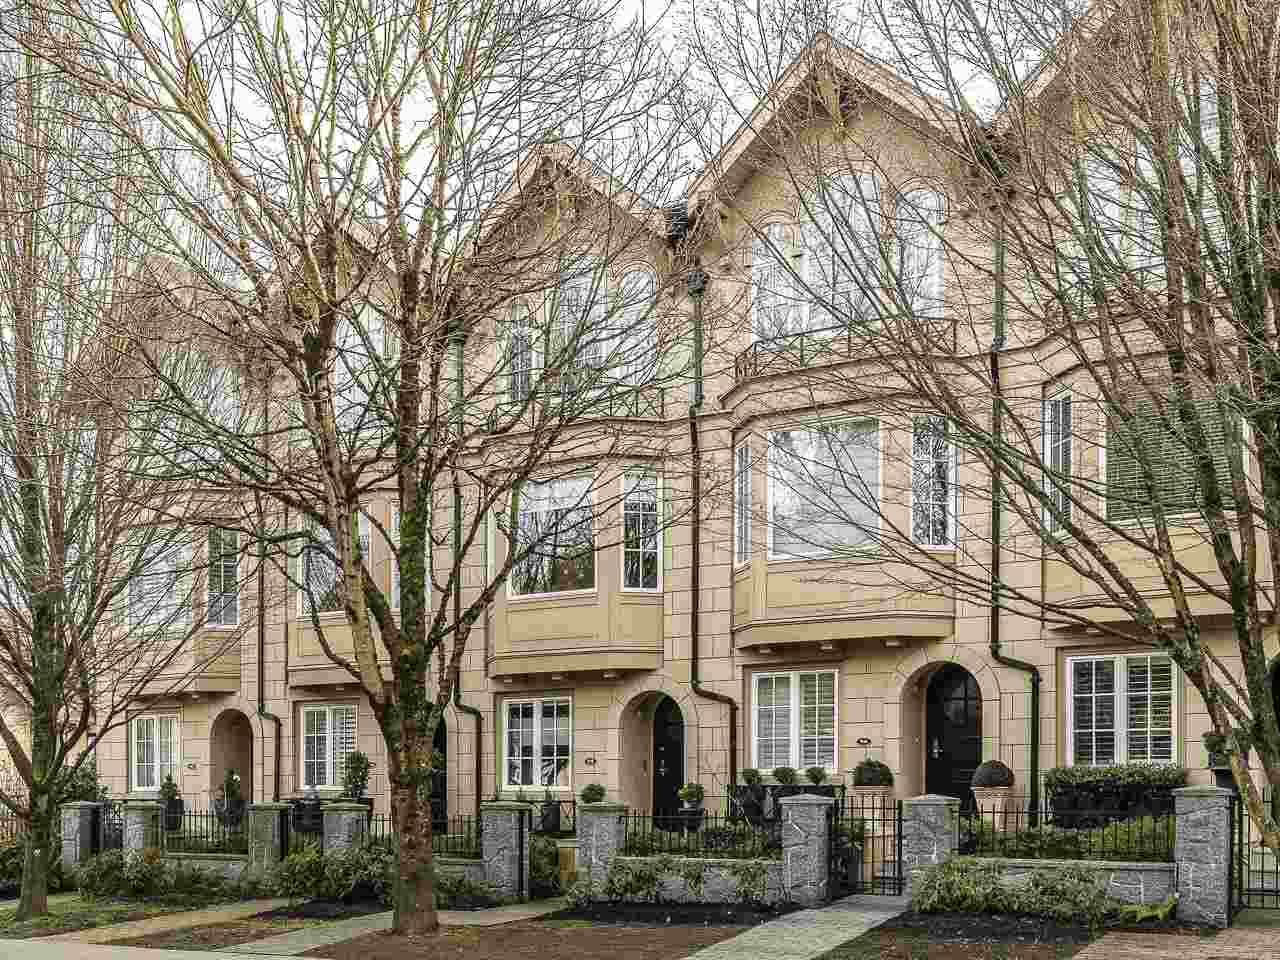 """Main Photo: 908 W 13TH Avenue in Vancouver: Fairview VW Townhouse for sale in """"Brownstone"""" (Vancouver West)  : MLS®# R2546994"""